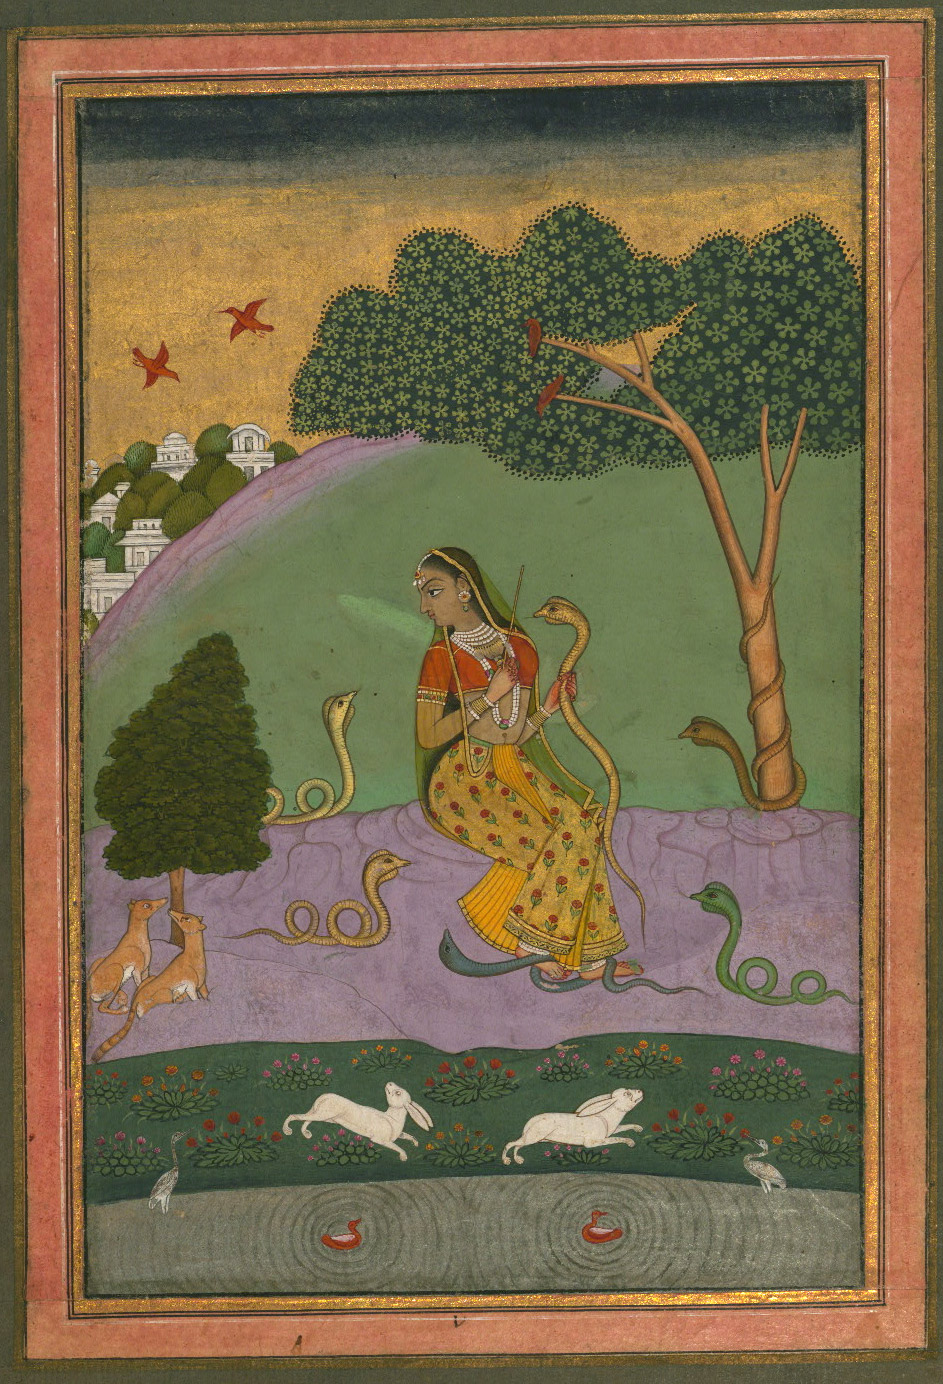 Asavari Ragini - Miniature Painting, Ragamala series, 19th Century